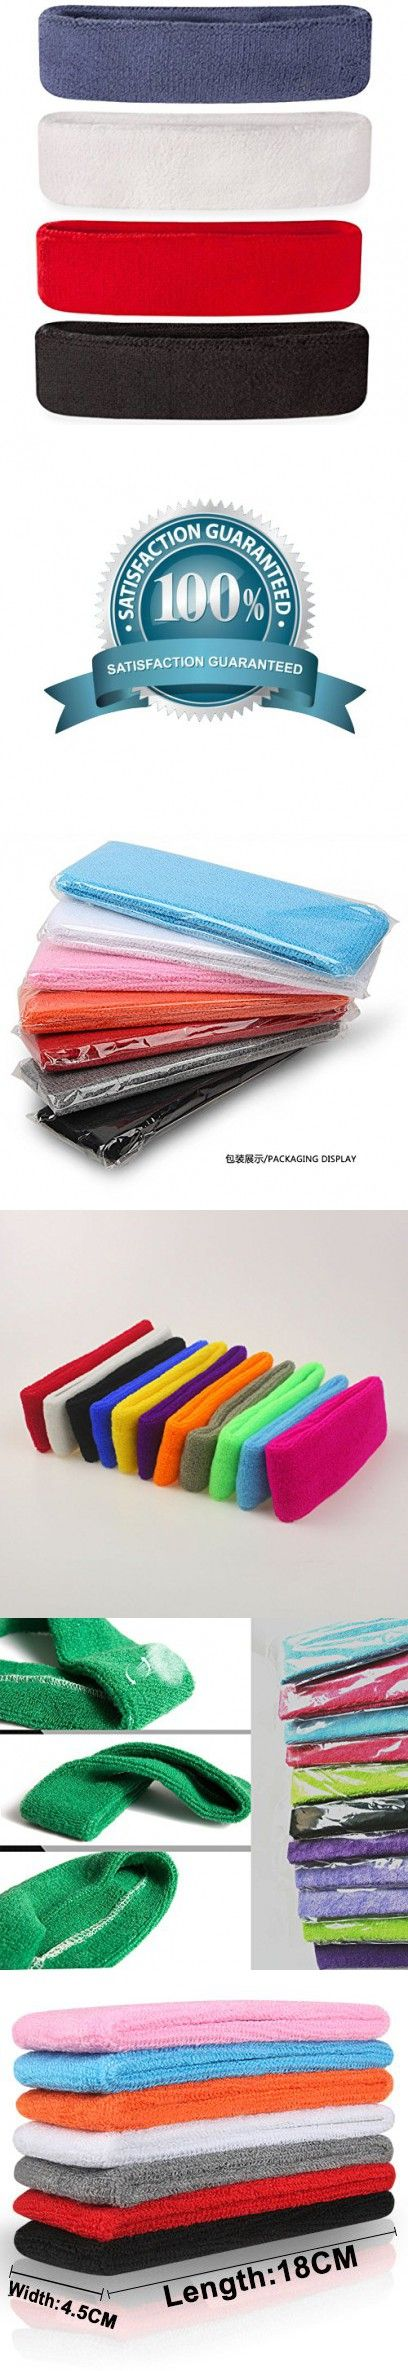 MAKLULU 4PCS Pack Colorful Sports & Outdoors Double Sweat Headbands Terry Cloth Moisture Wicking with 2 ply 100% cotton surface-01